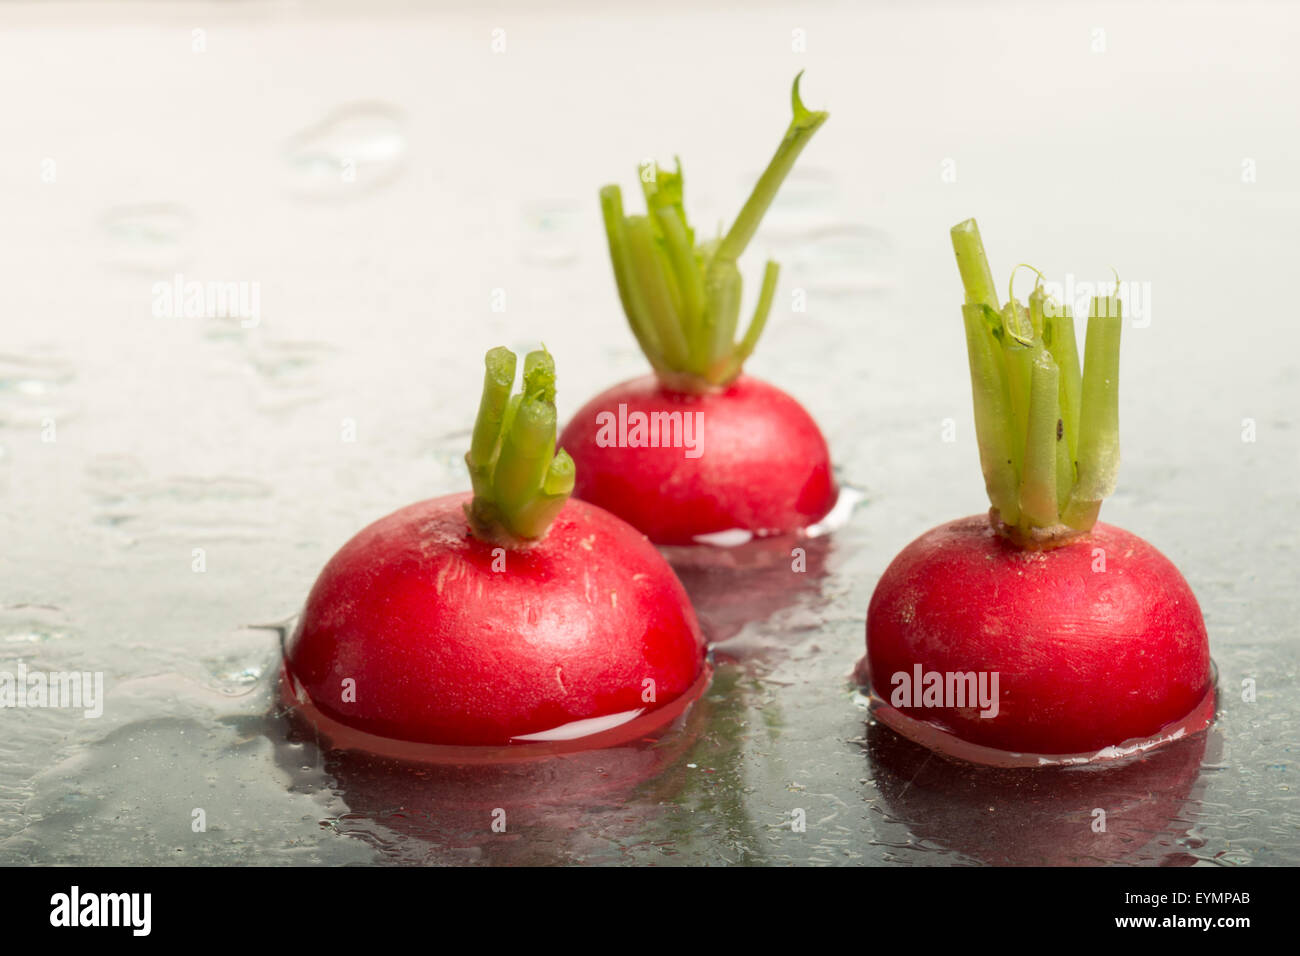 Tops of three red radishes on display, studio-shot - Stock Image